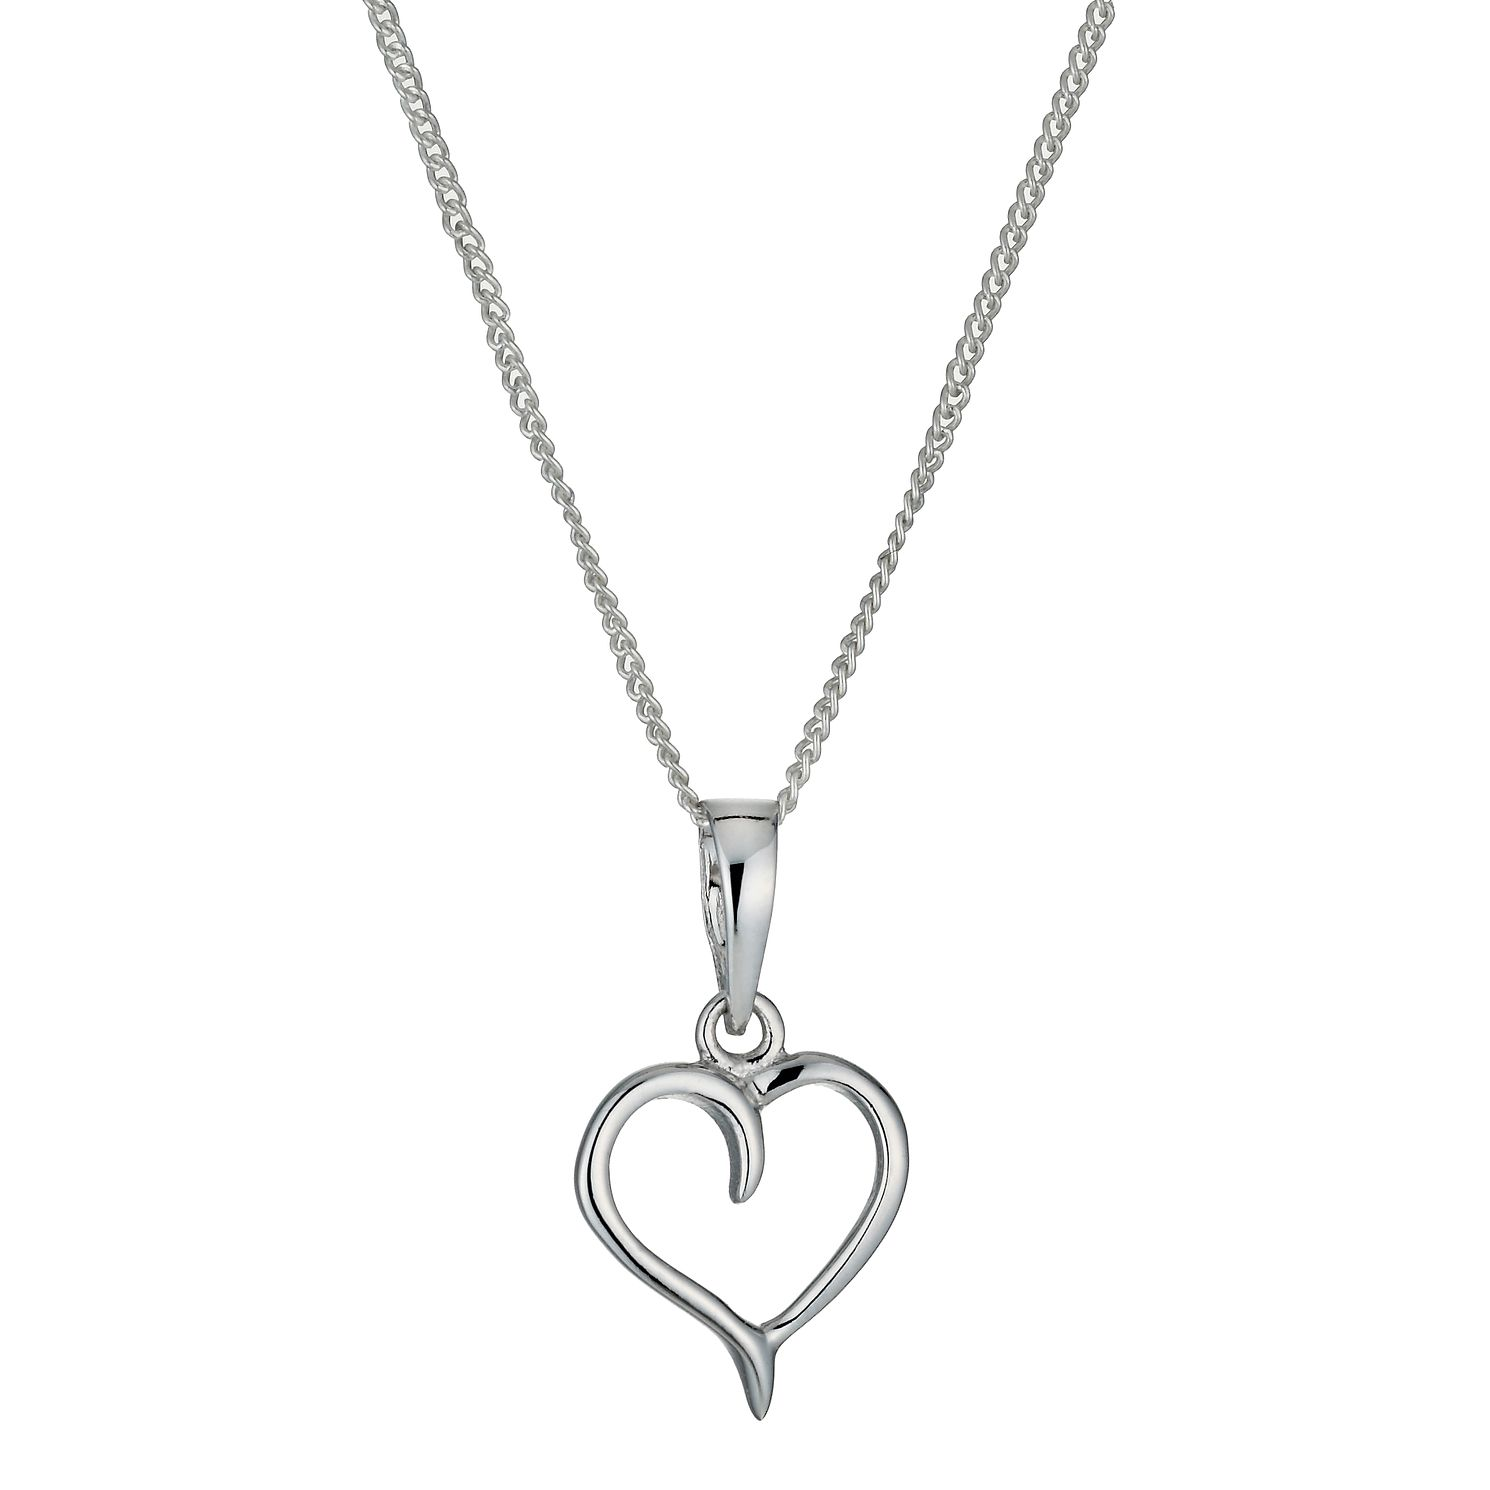 Sterling silver heart pendant necklace hmuel sterling silver heart pendant necklace product number 9953876 mozeypictures Gallery